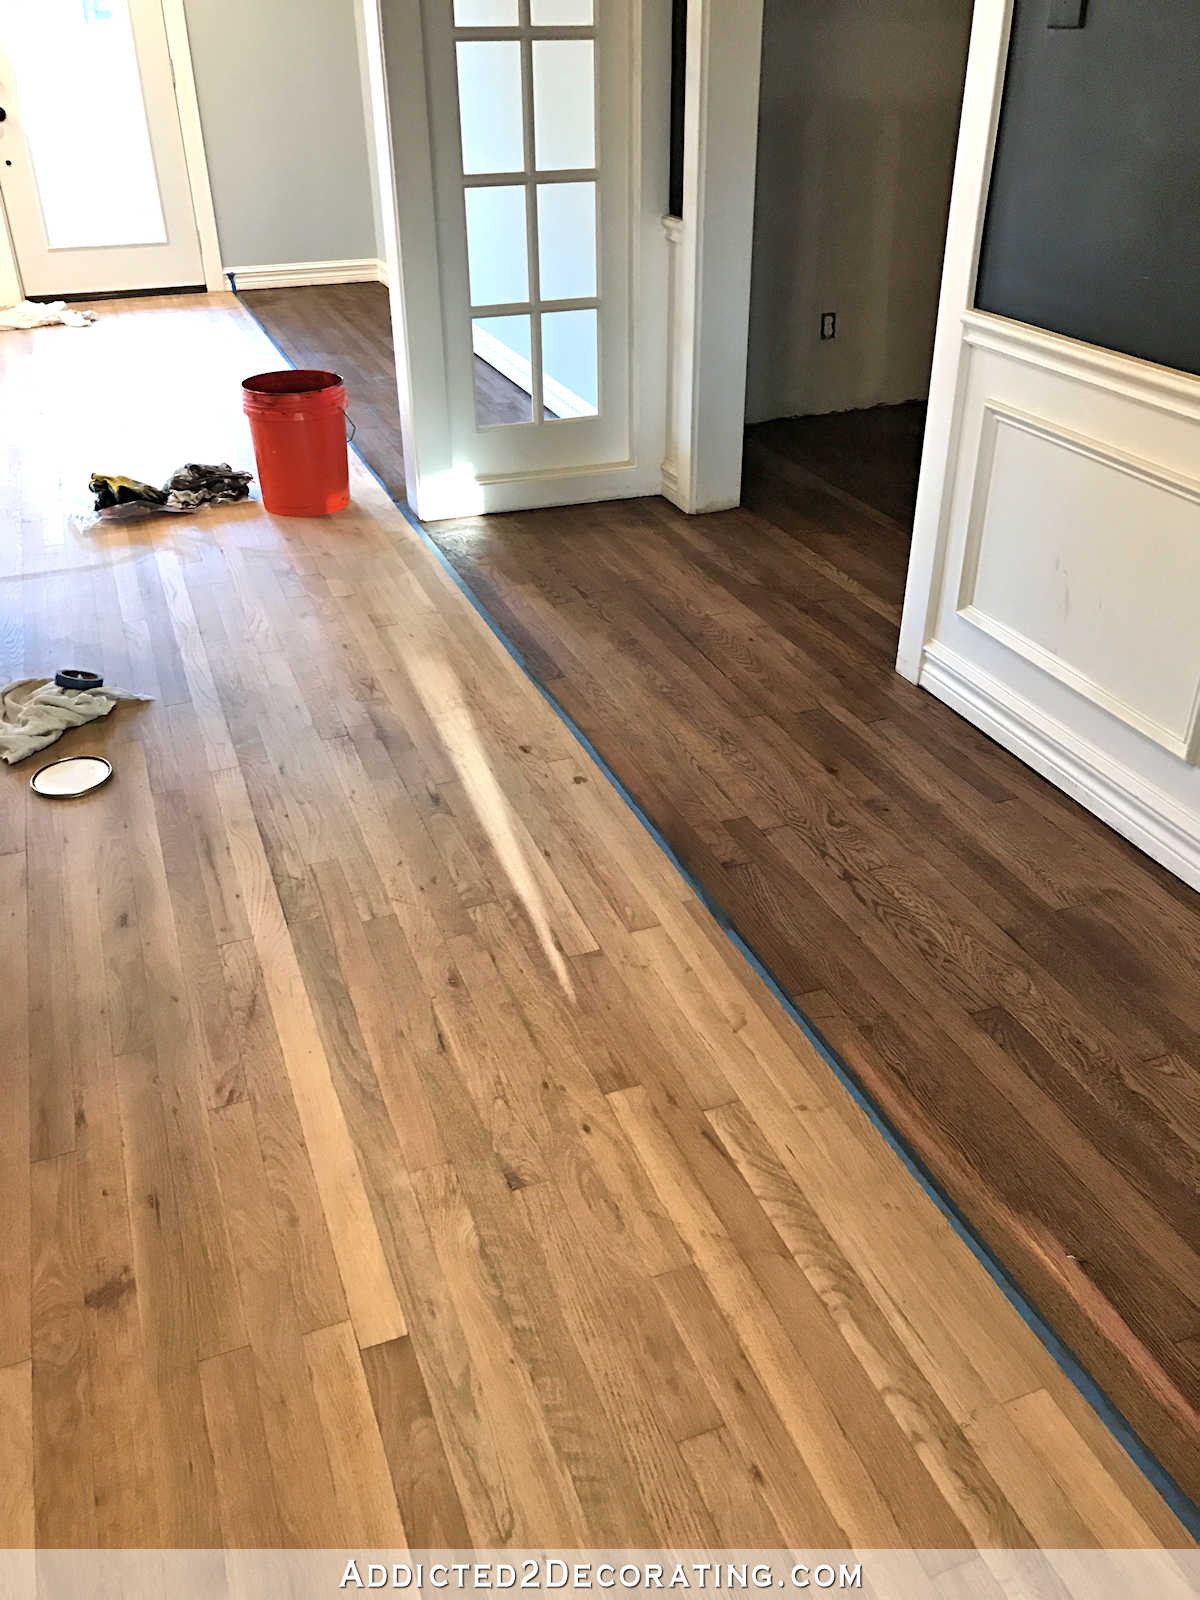 sanding and refinishing hardwood floors of adventures in staining my red oak hardwood floors products process inside staining red oak hardwood floors 6 stain on partial floor in entryway and music room